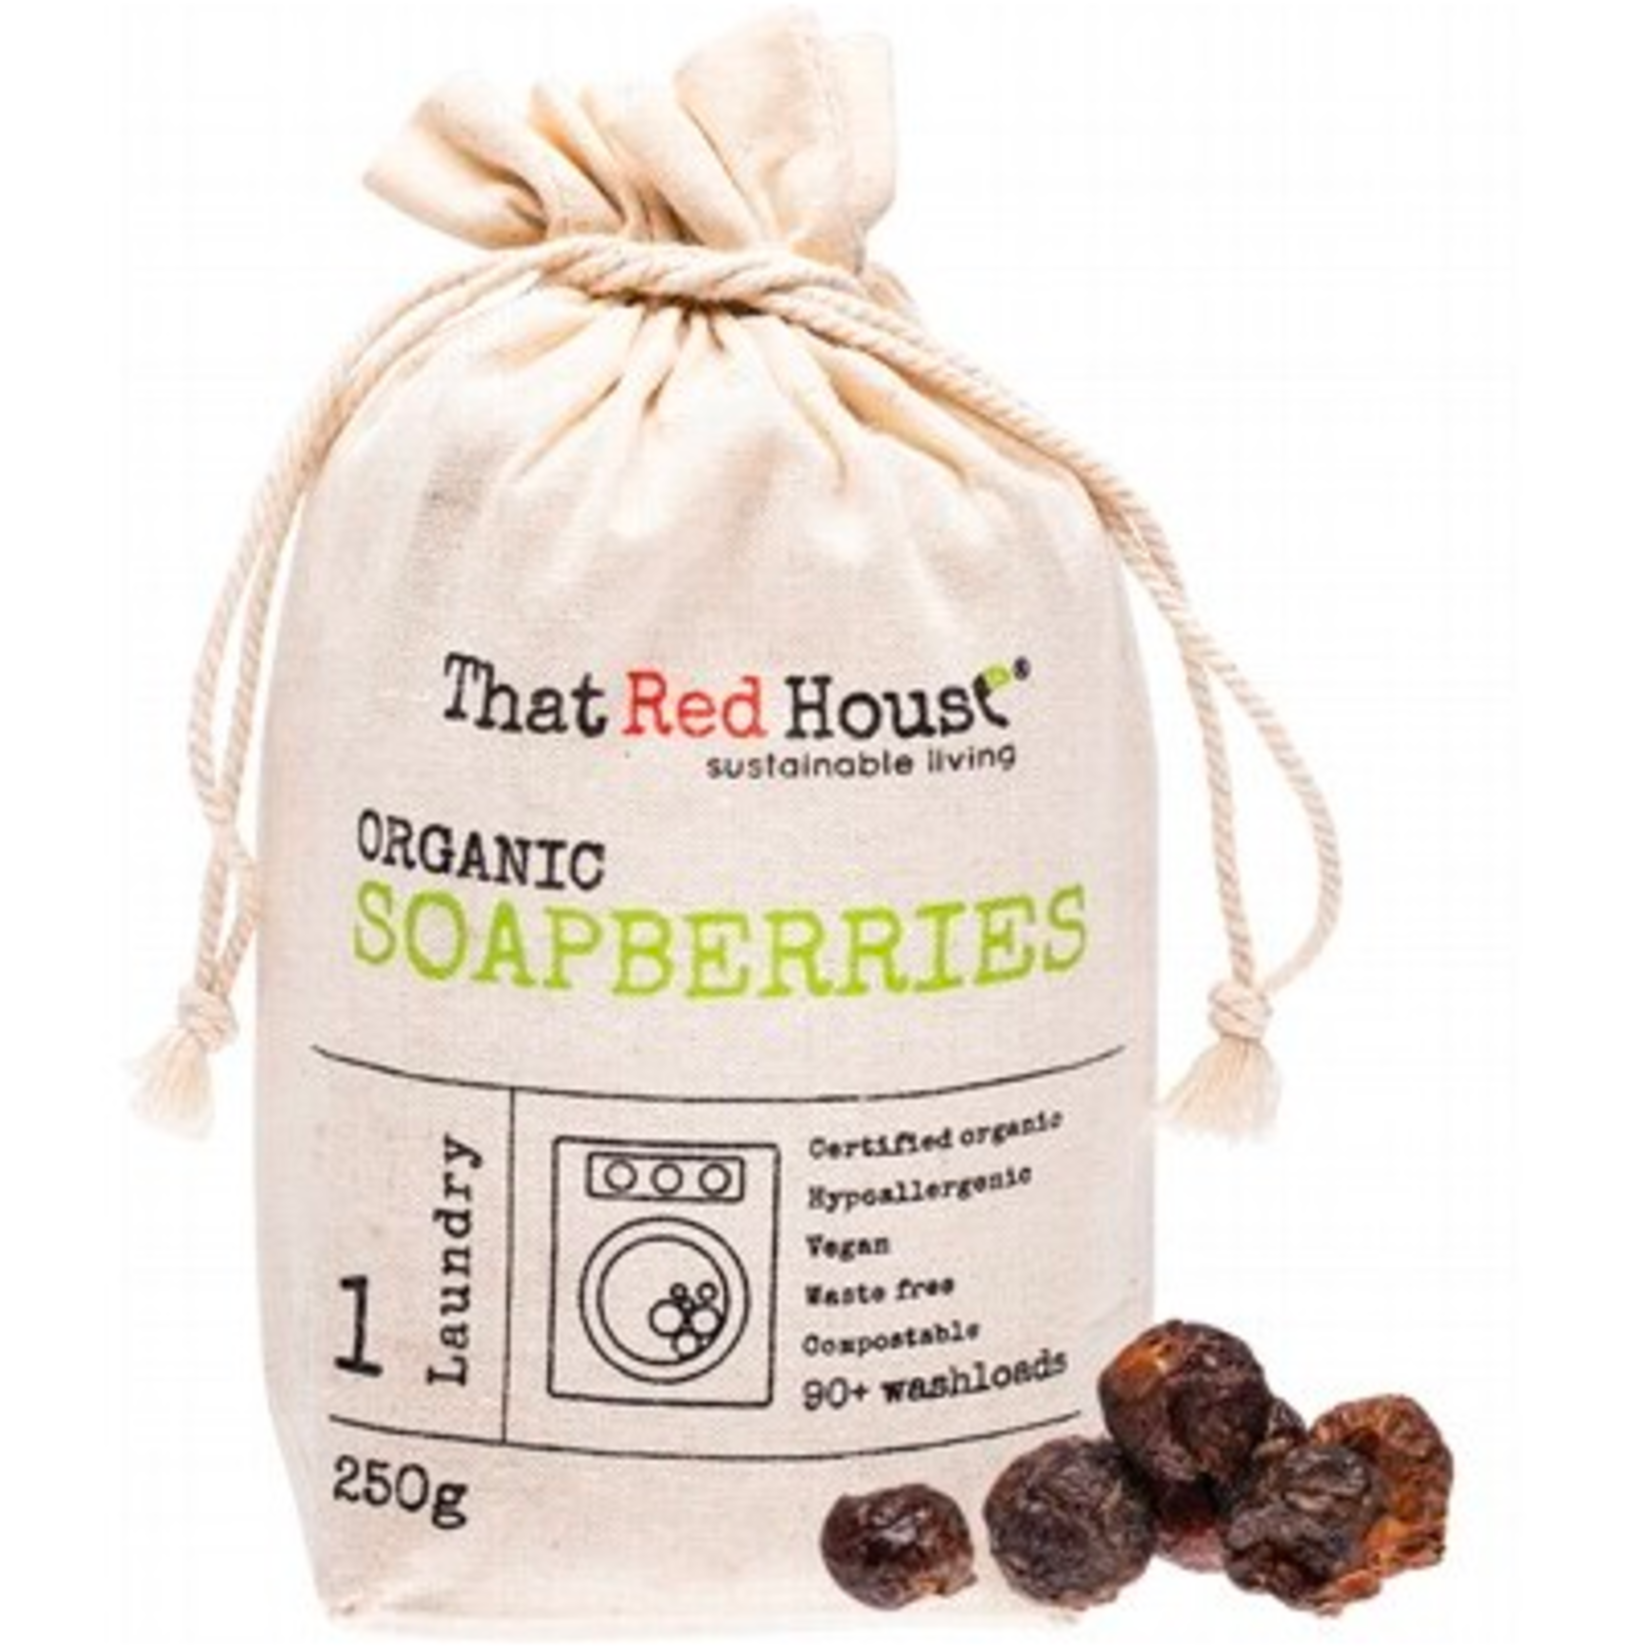 That Red House That Red House Organic Soapberries - 250g